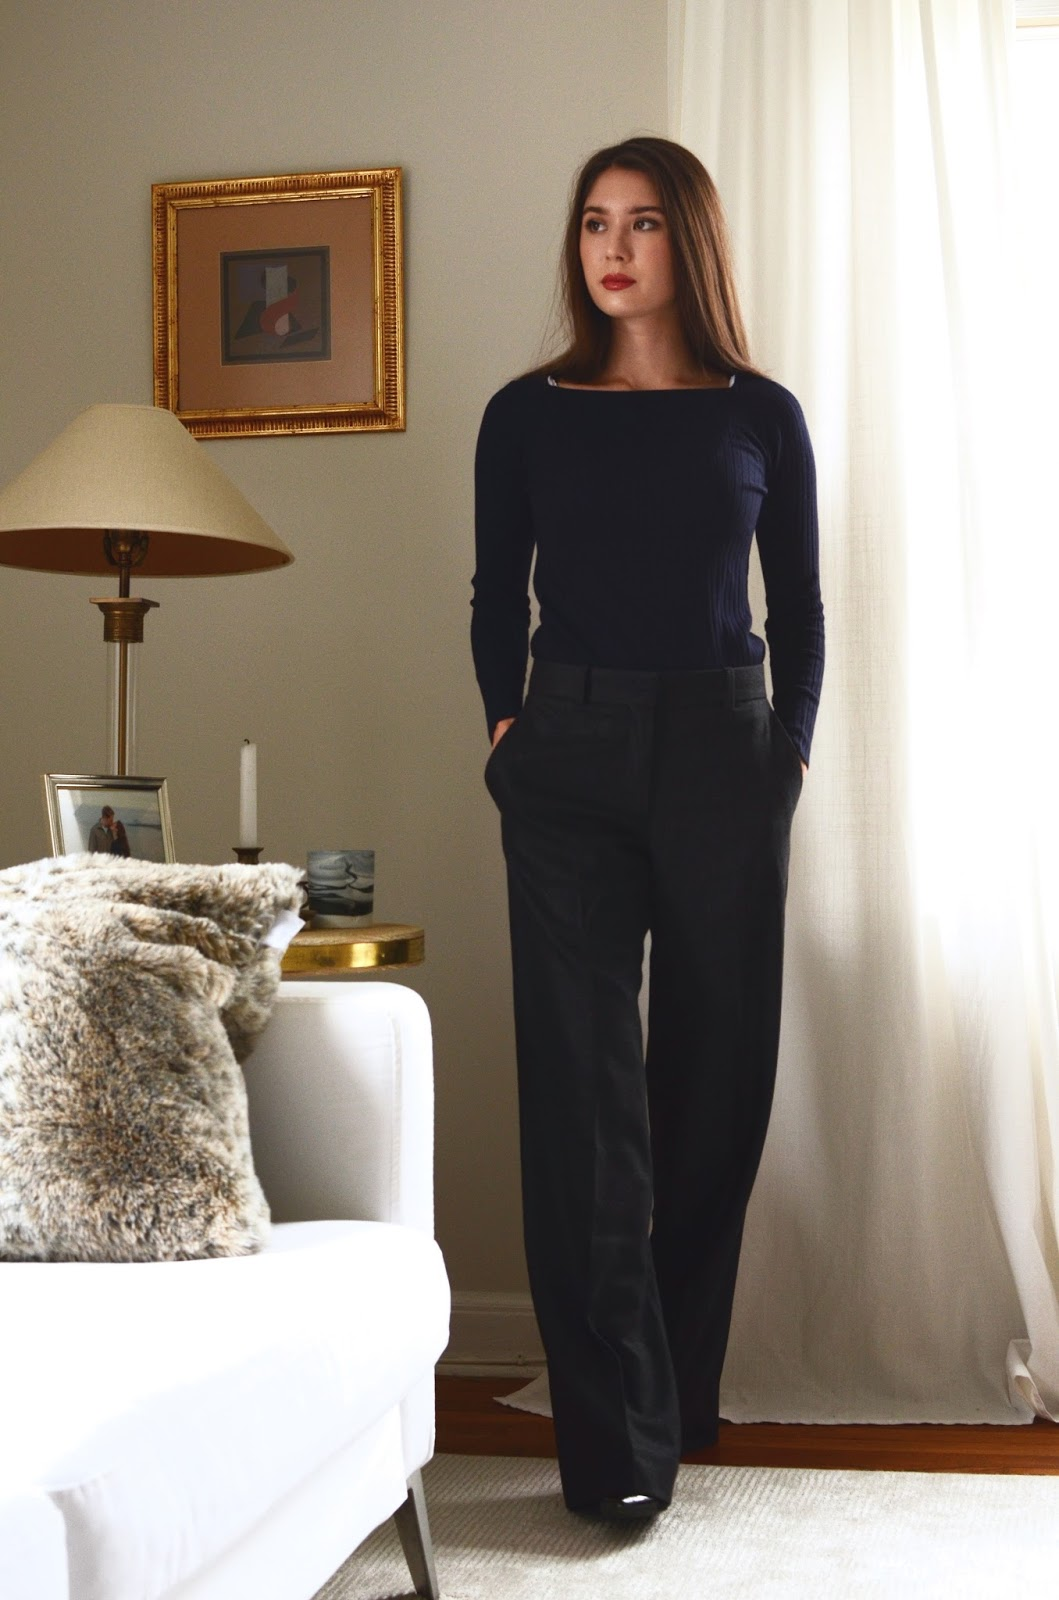 ed39e1d7b7e Everlane Luxe Ribbed Wool Boatneck Review Photos Sizing Information